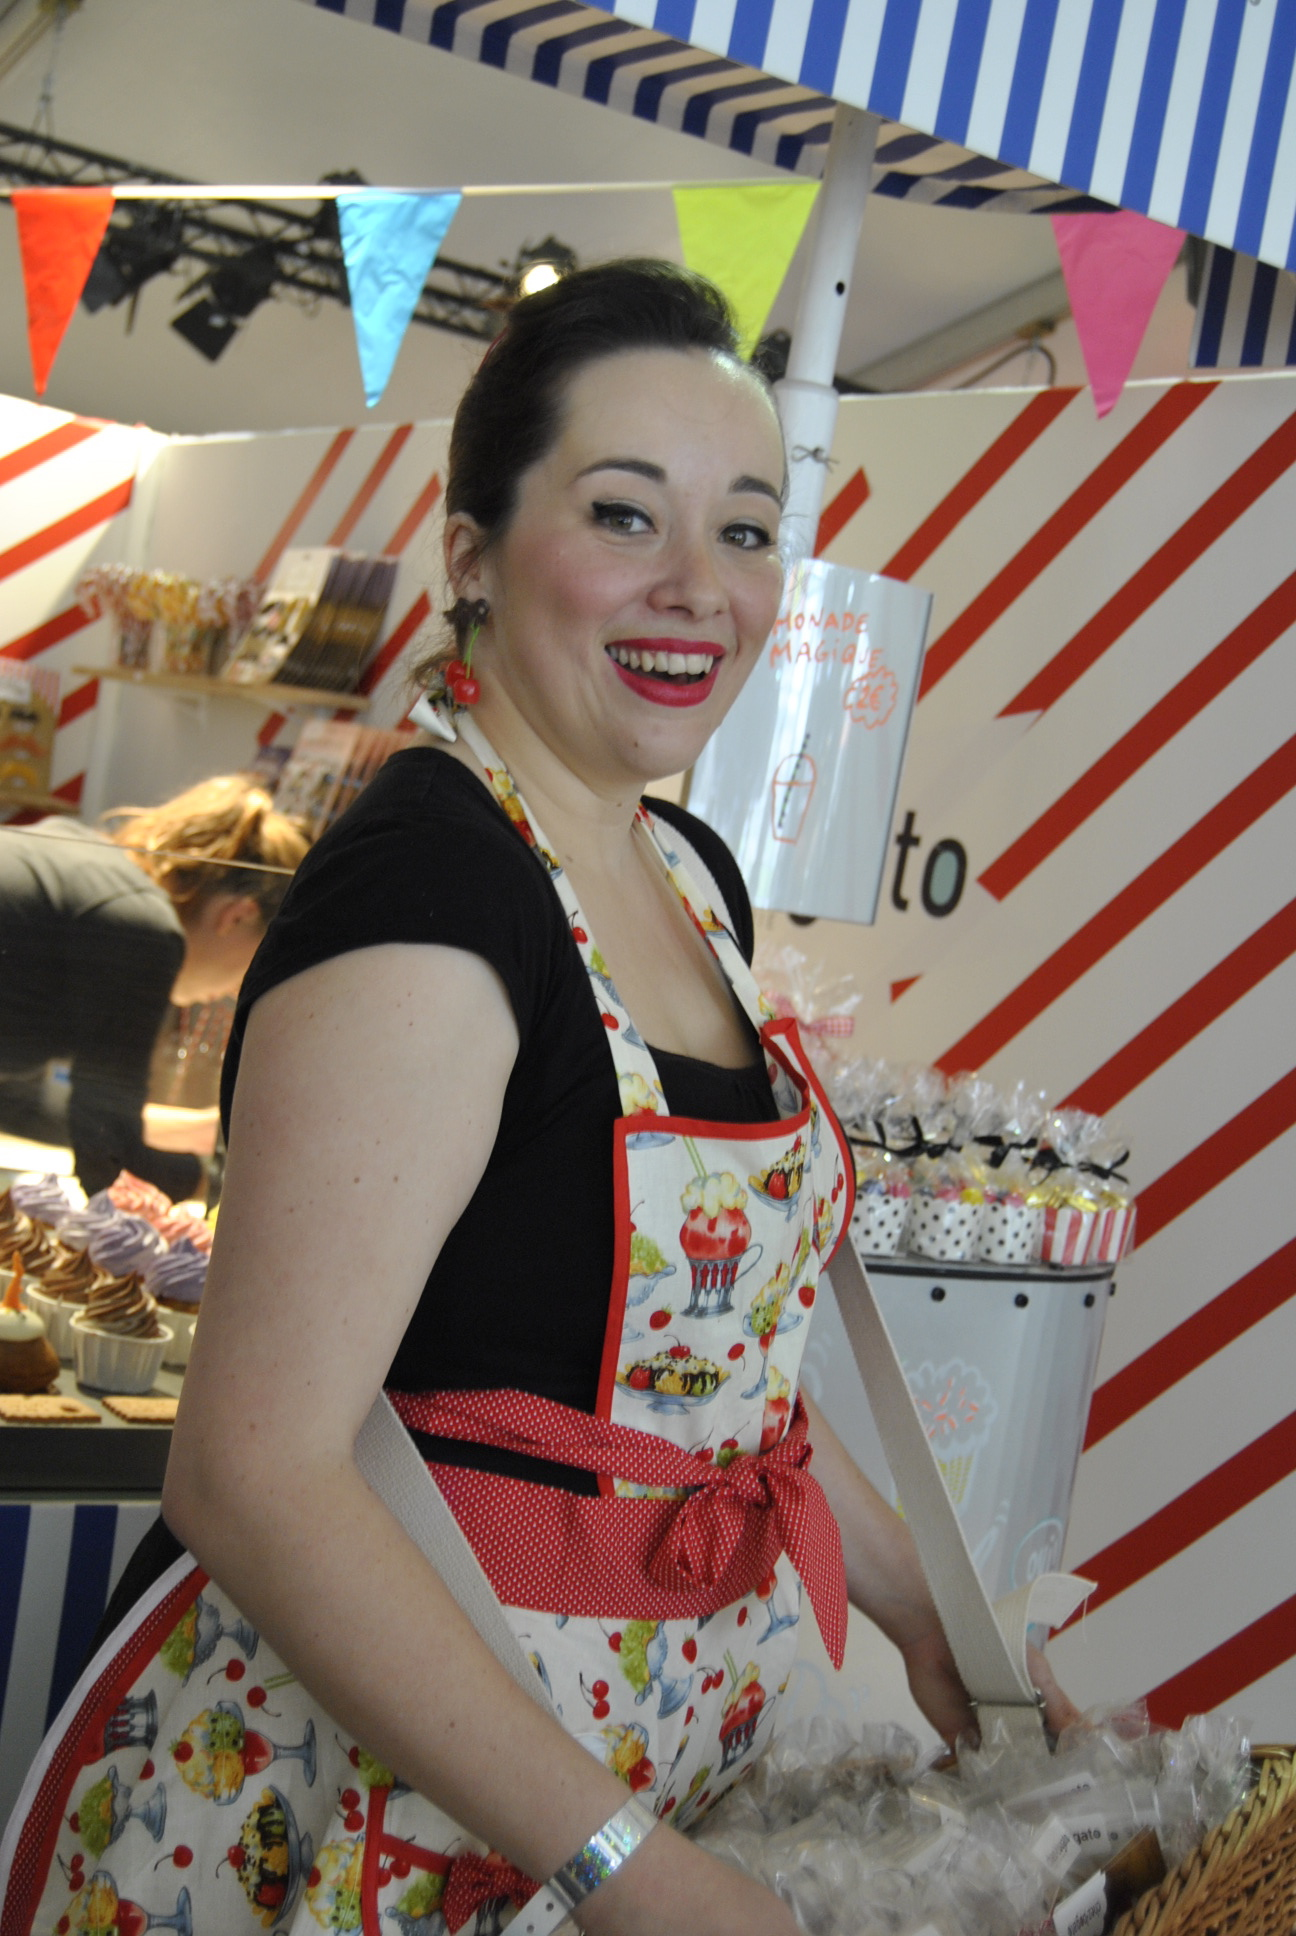 colette carnival waitress with apron paris